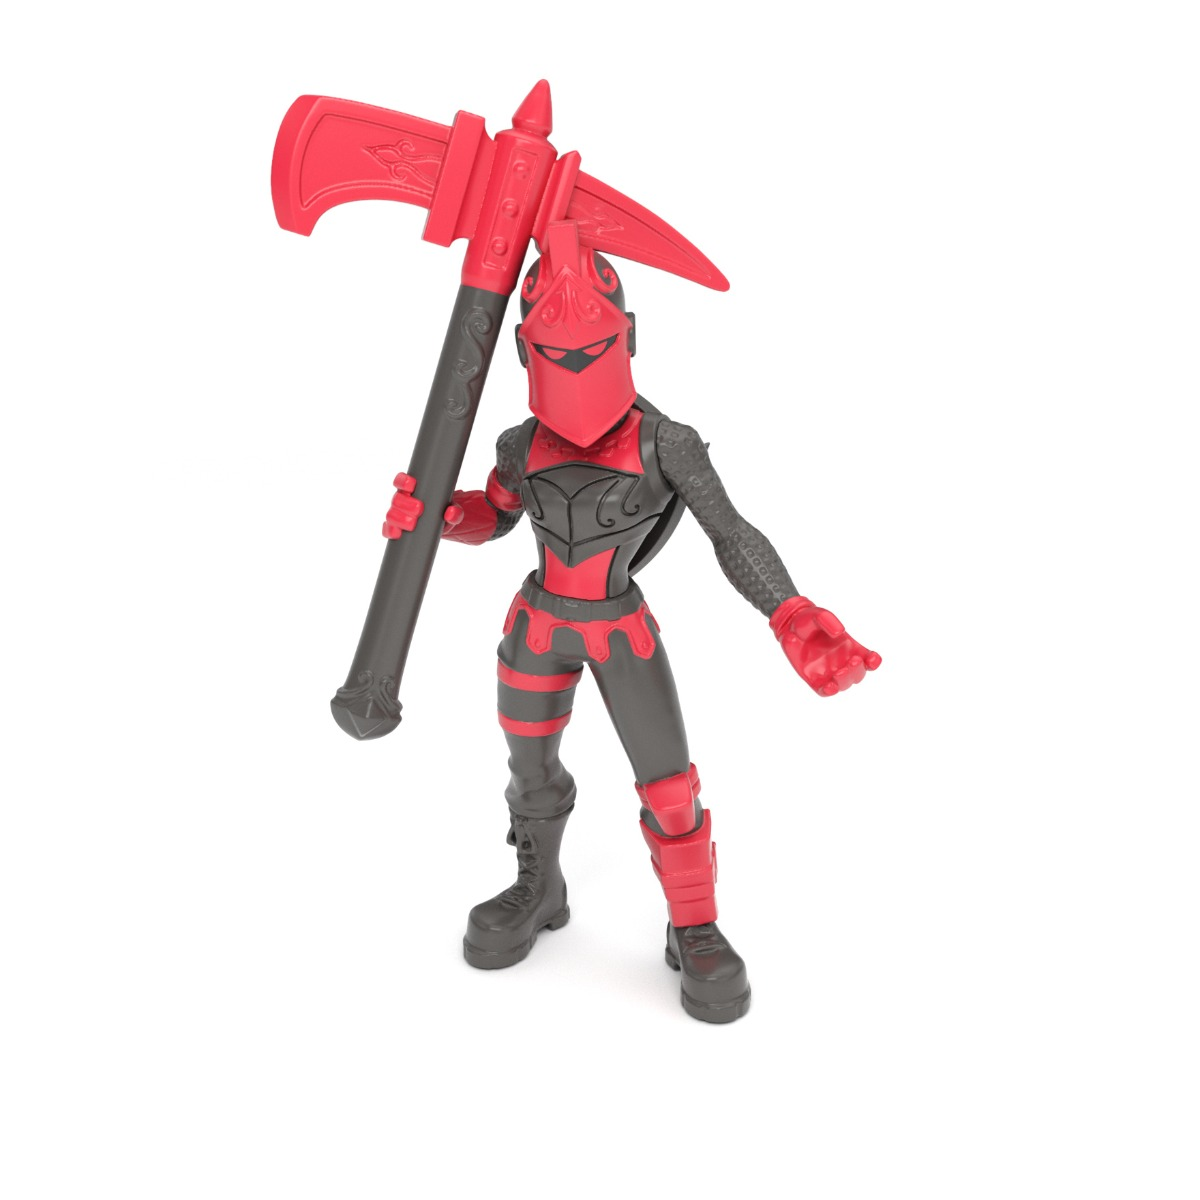 Figurina Fortnite S2 - Red Knight